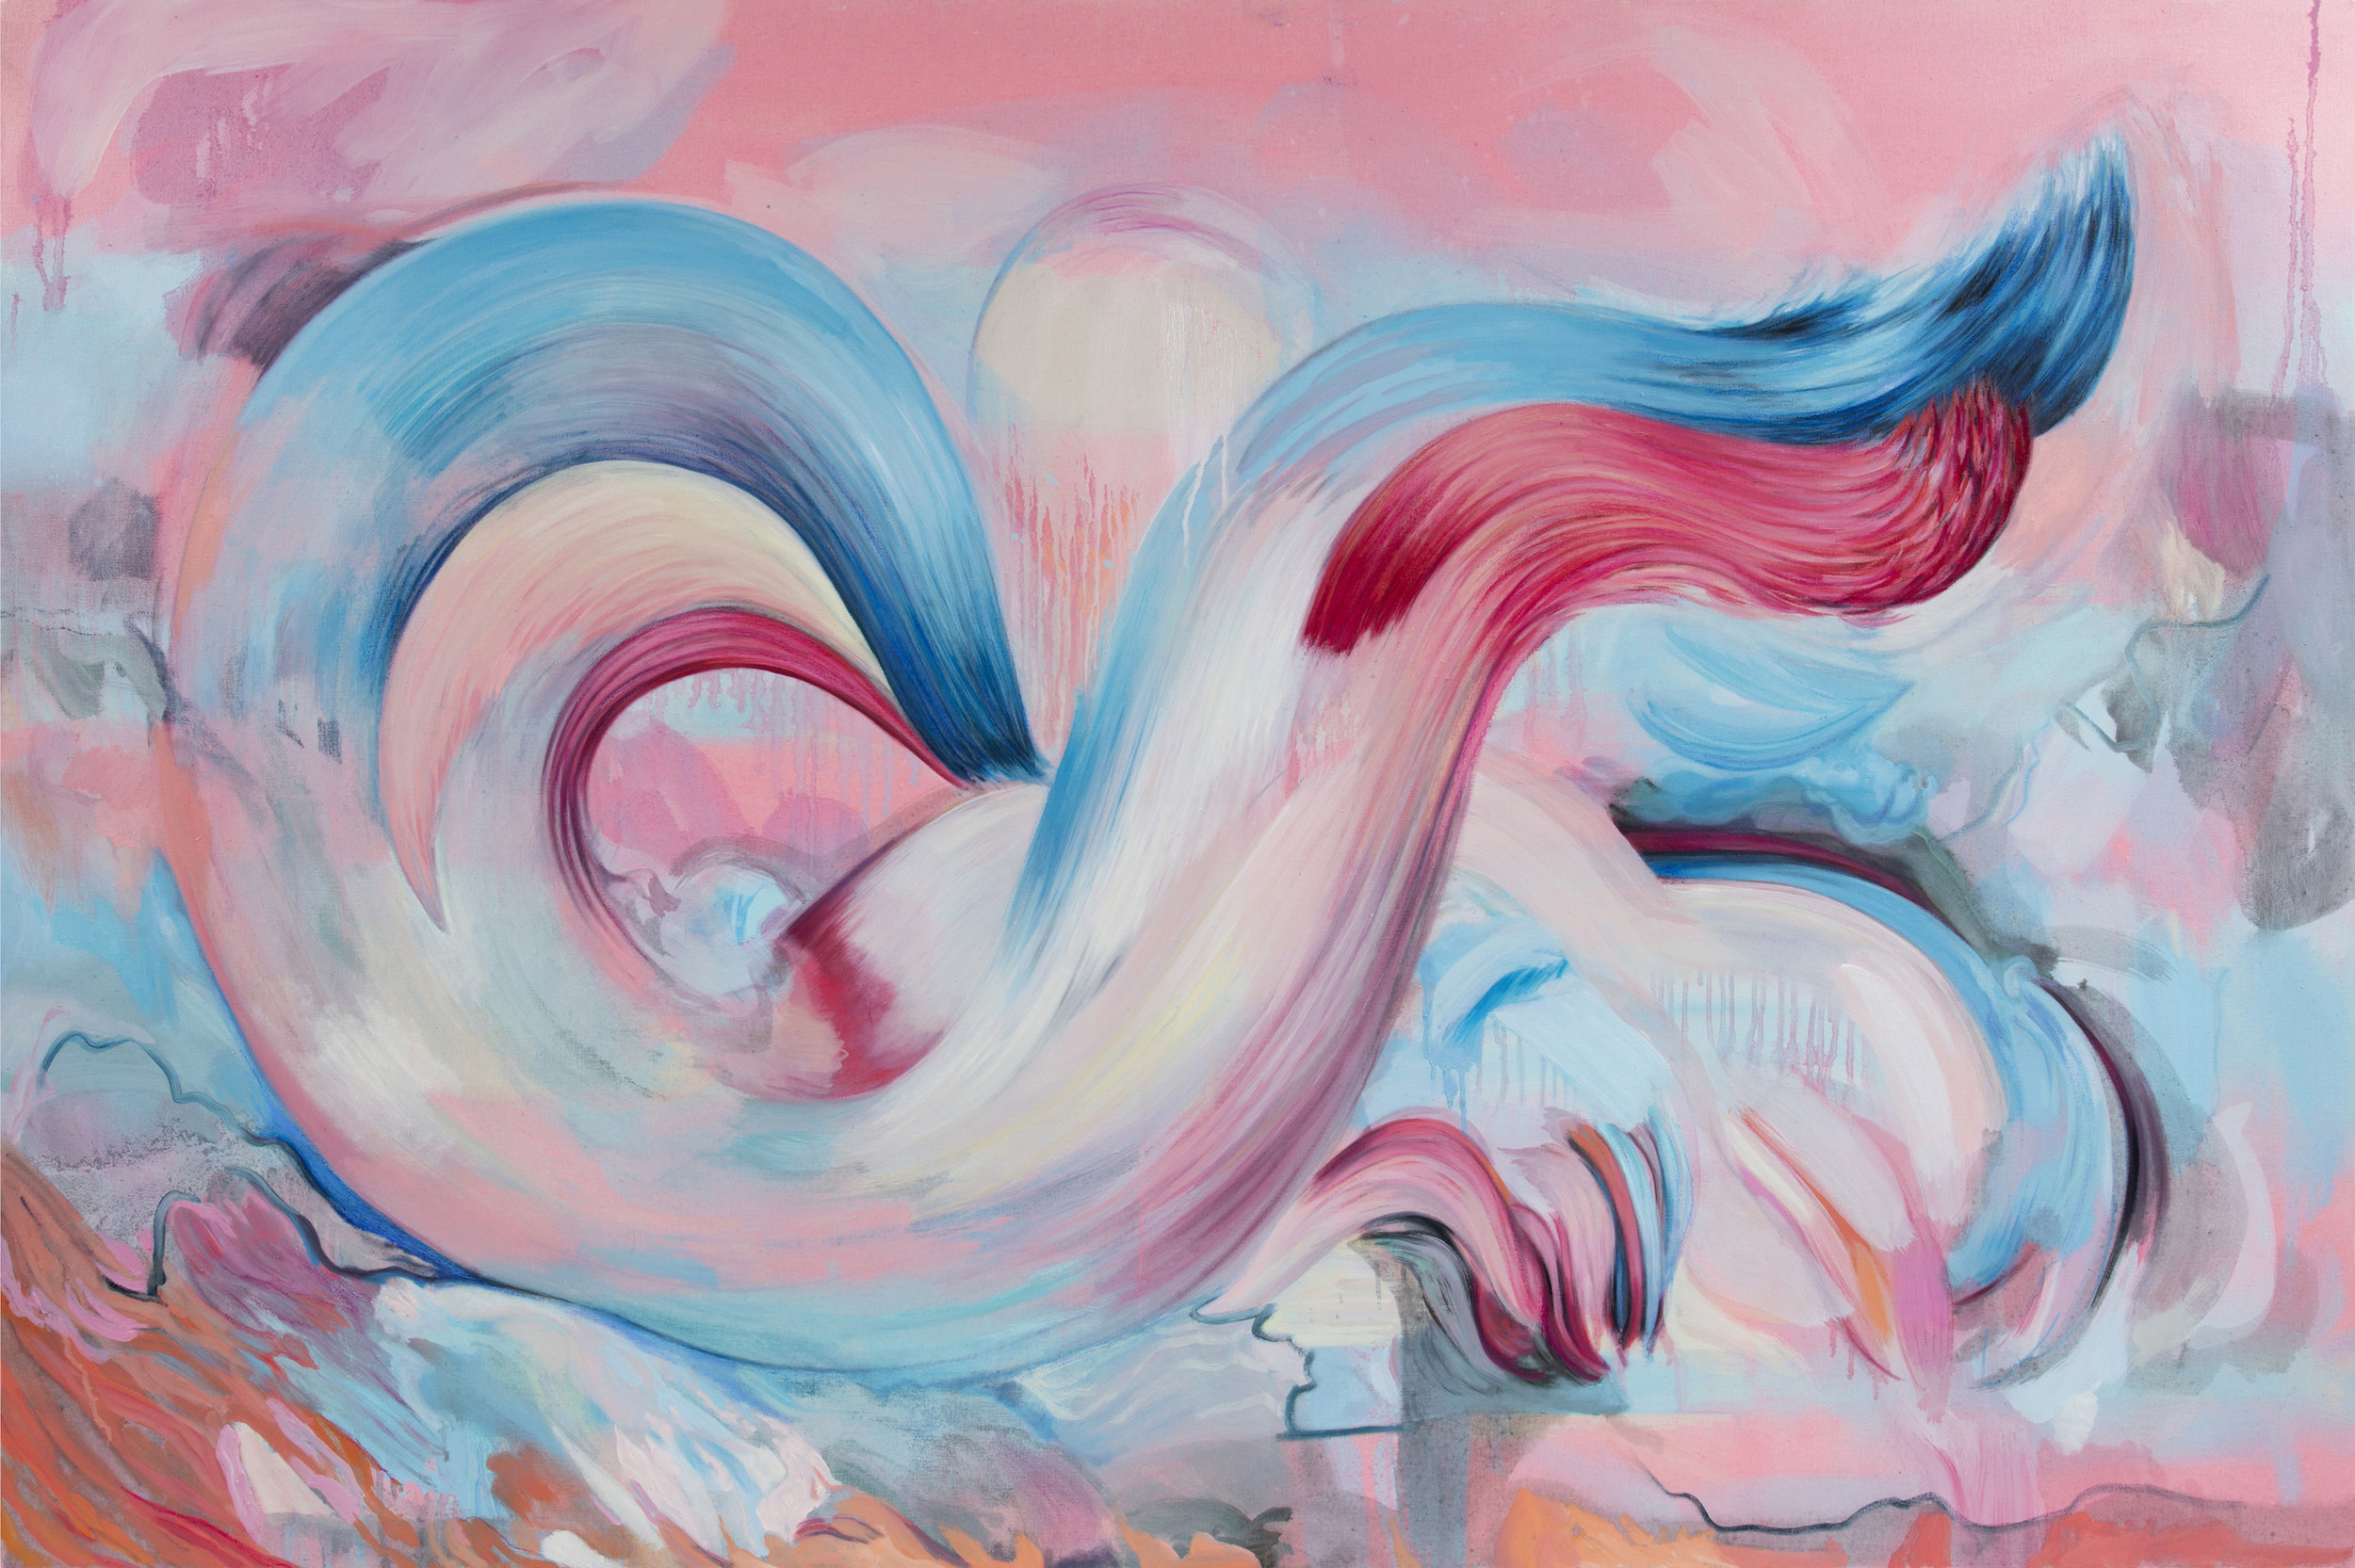 'Pink Blue Pink Blue Pink', Oil on Canvas, 100x 150cm 2019